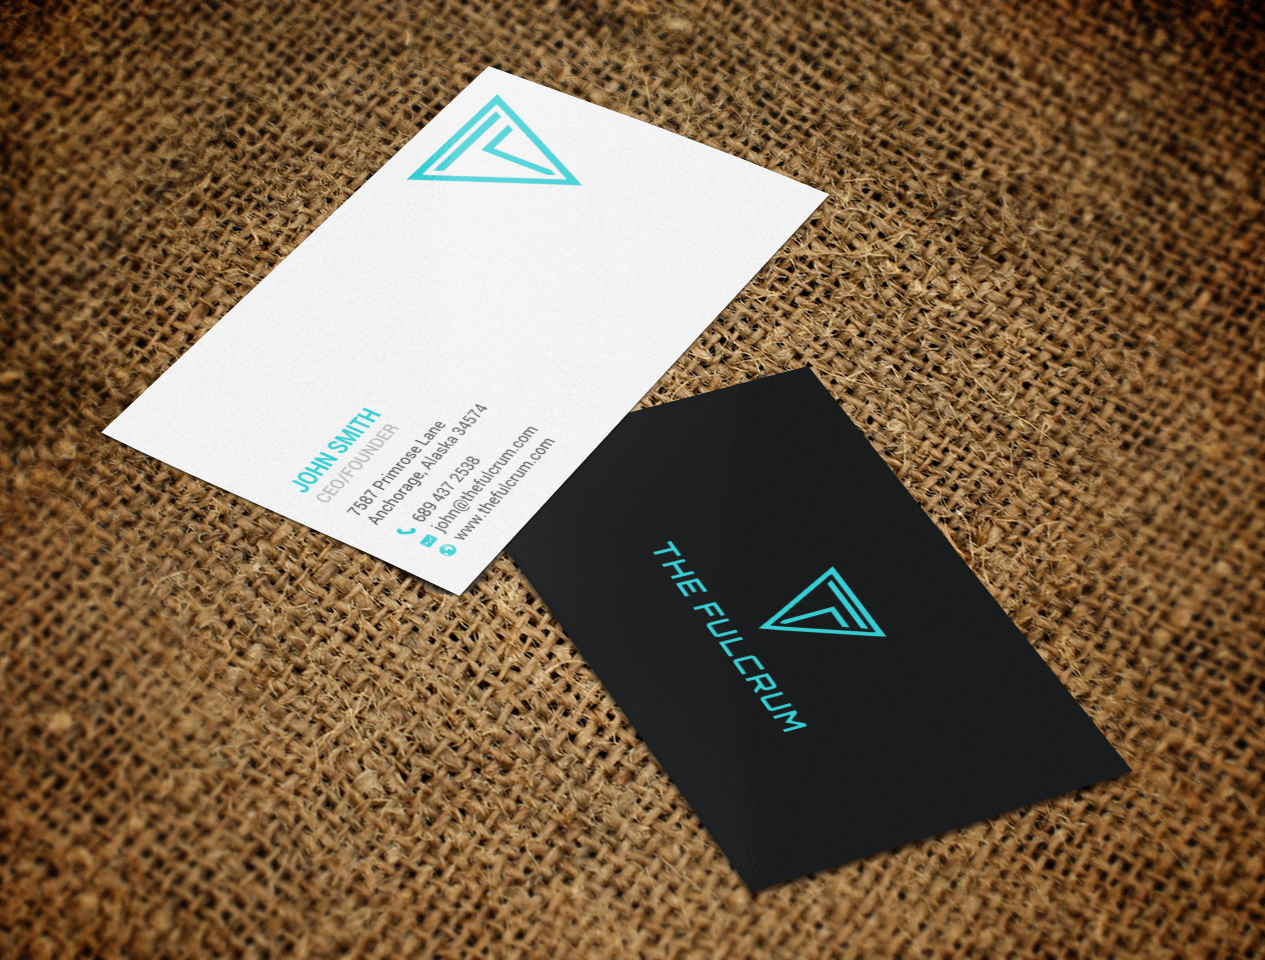 Business Card Design By Chandrayaancreative For Infinity Music Group LLC